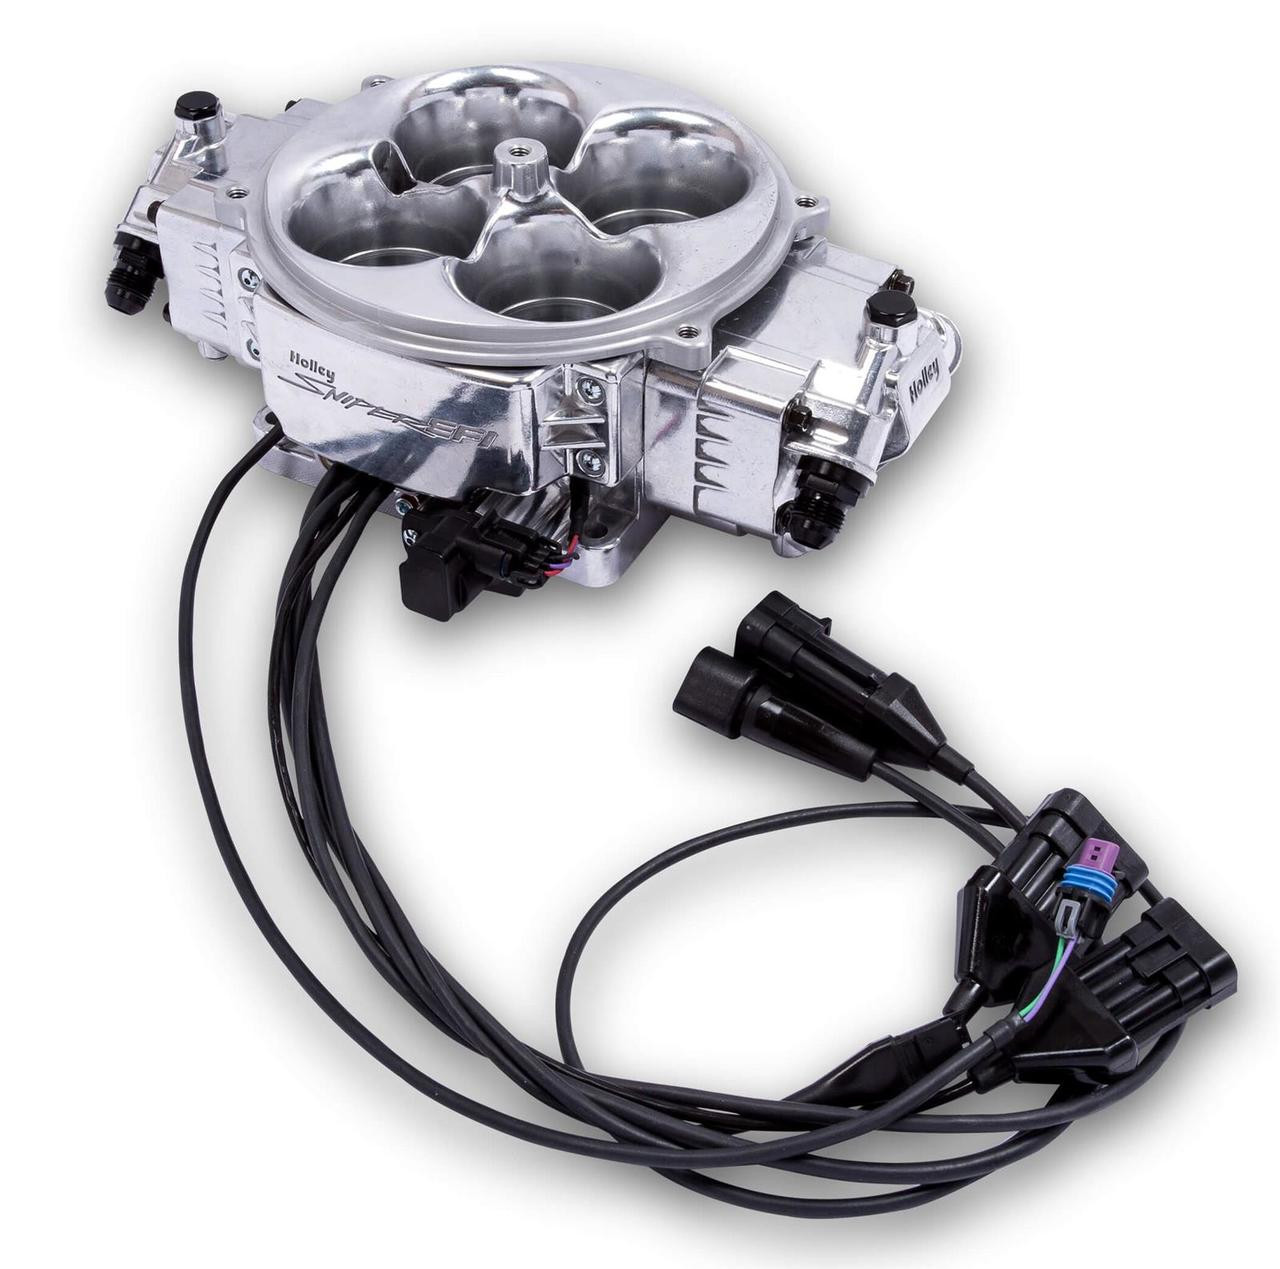 Holley Sniper EFI Stealth 4500 Fuel Injection System 1440 cfm 550-841 FREE SHIPPING